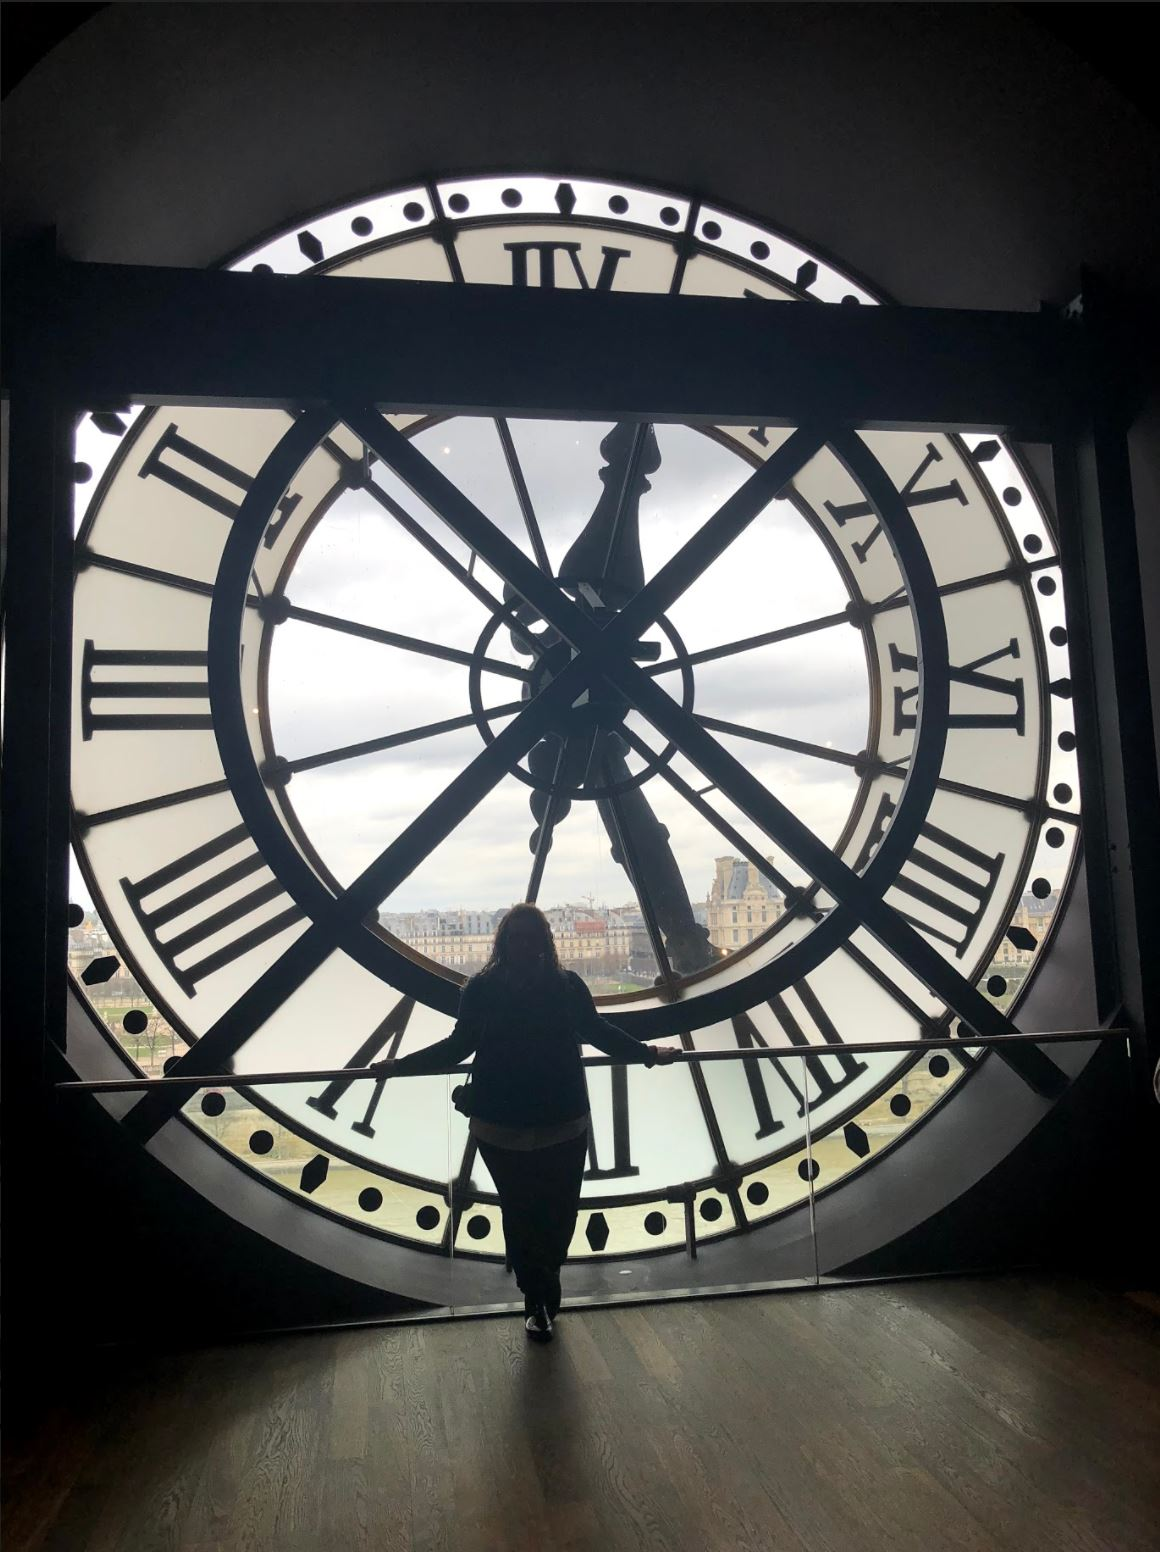 Madison Cline looking outside of clock window in Paris, France